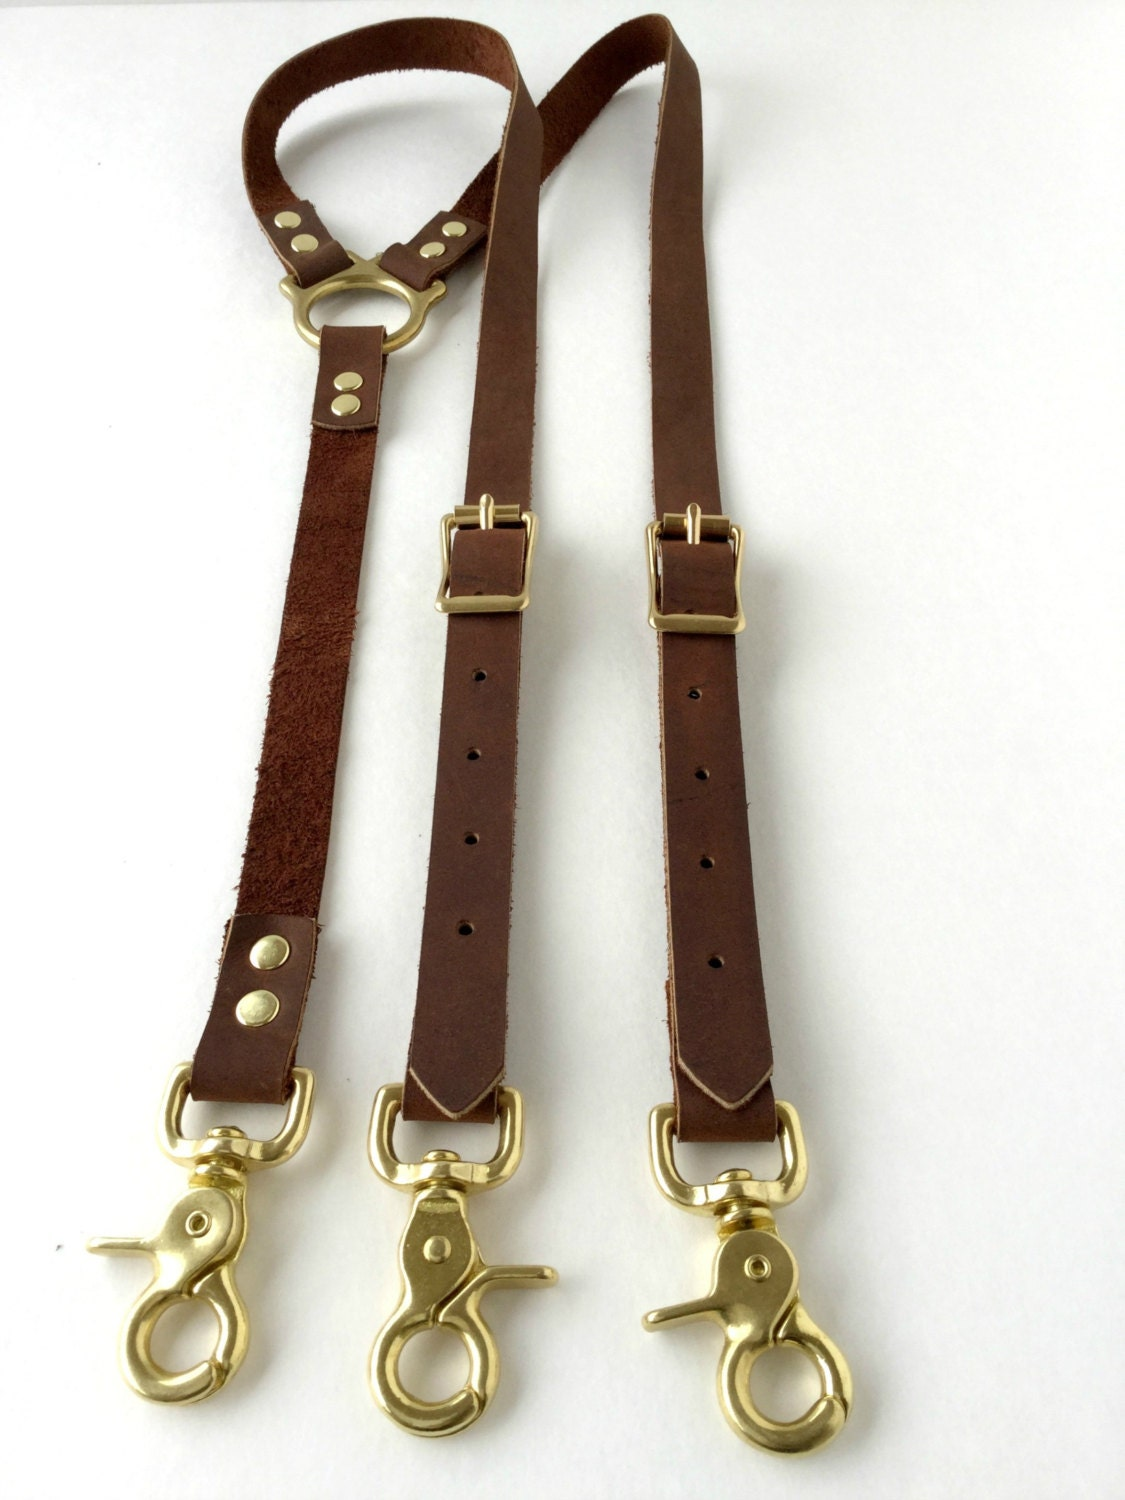 Find Traditional Mens Suspenders and Braces at Historical Emporium! We have thousands of unique, hard-to-find items in vintage and antique styles. Gentlemans Emporium, Steampunk Emporium, Western Emporium and Ladies Emporium are now Historical Emporium! All of these websites are now combined into one single (epic) Emporium, Historical Emporium (disborunmaba.ga), with all the same .